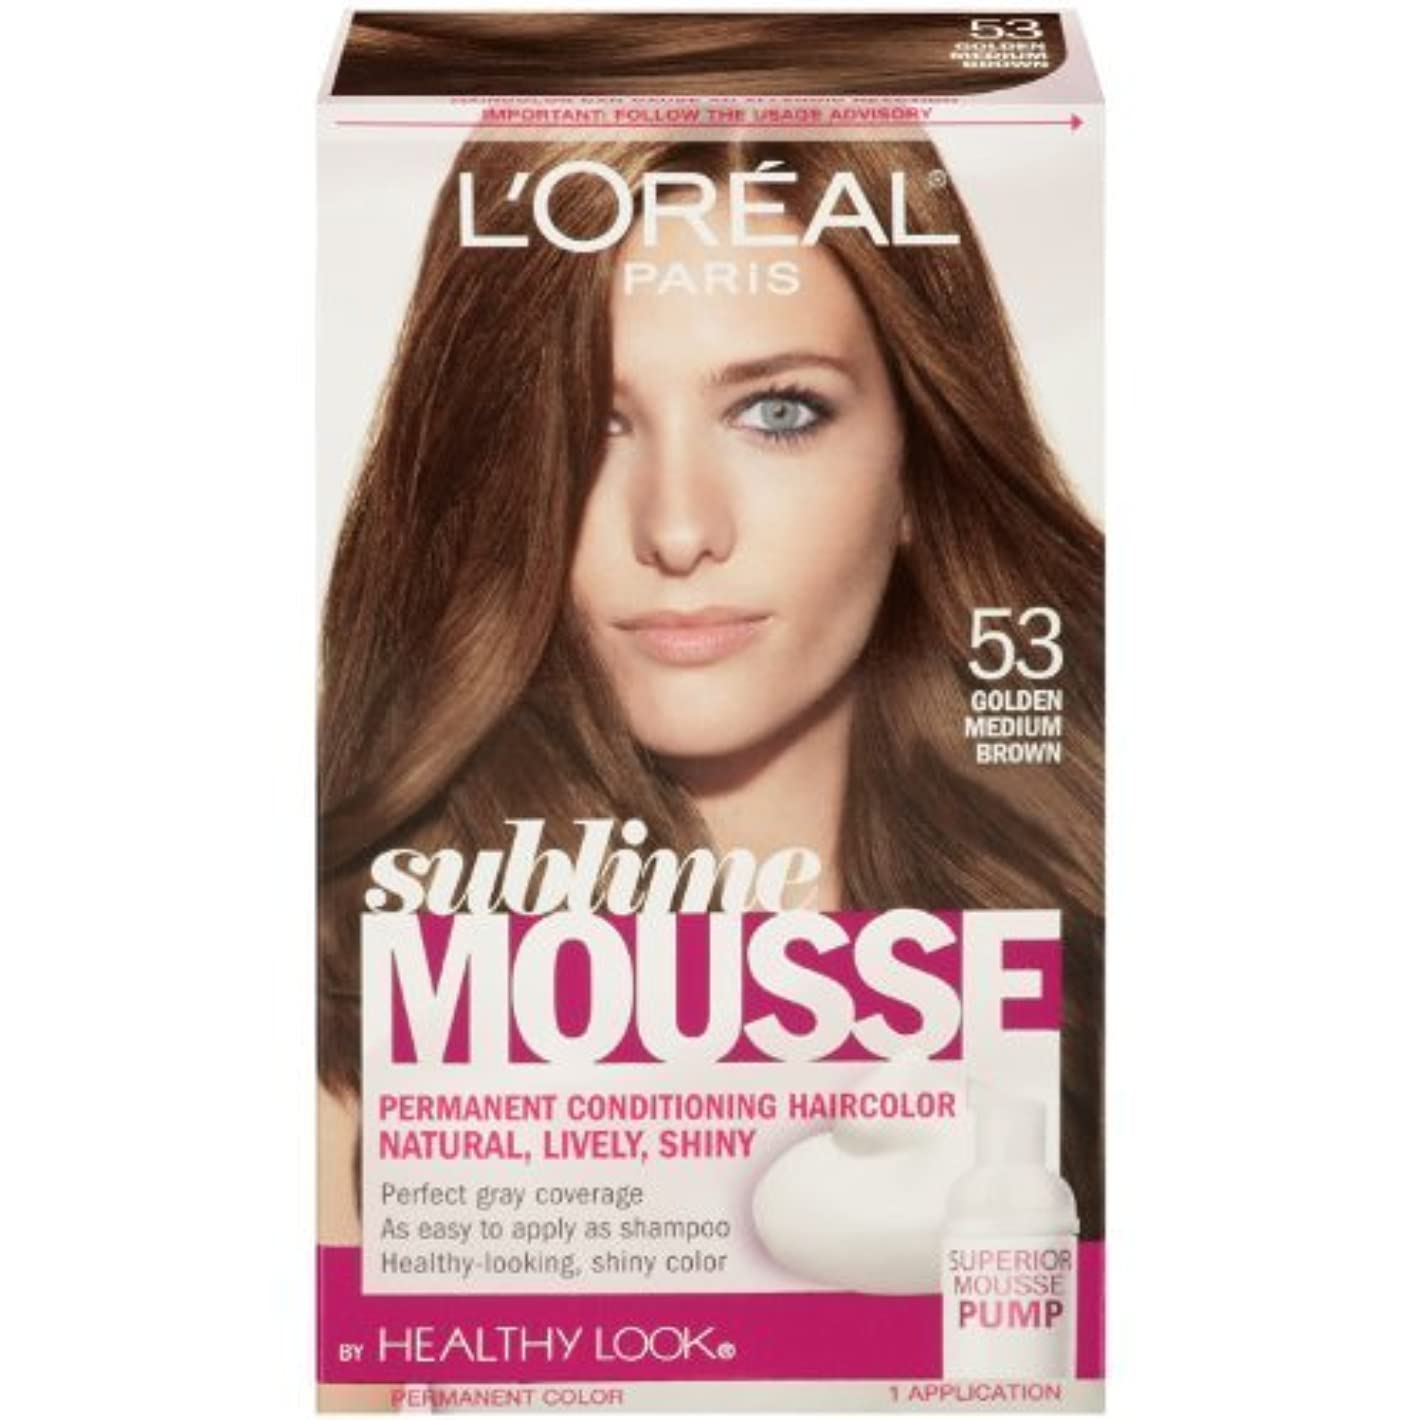 謎分岐するスーパーL'Oreal Paris Sublime Mousse by Healthy Look Hair Color, 53 Golden Medium Brown by SUBLIME MOUSSE [並行輸入品]